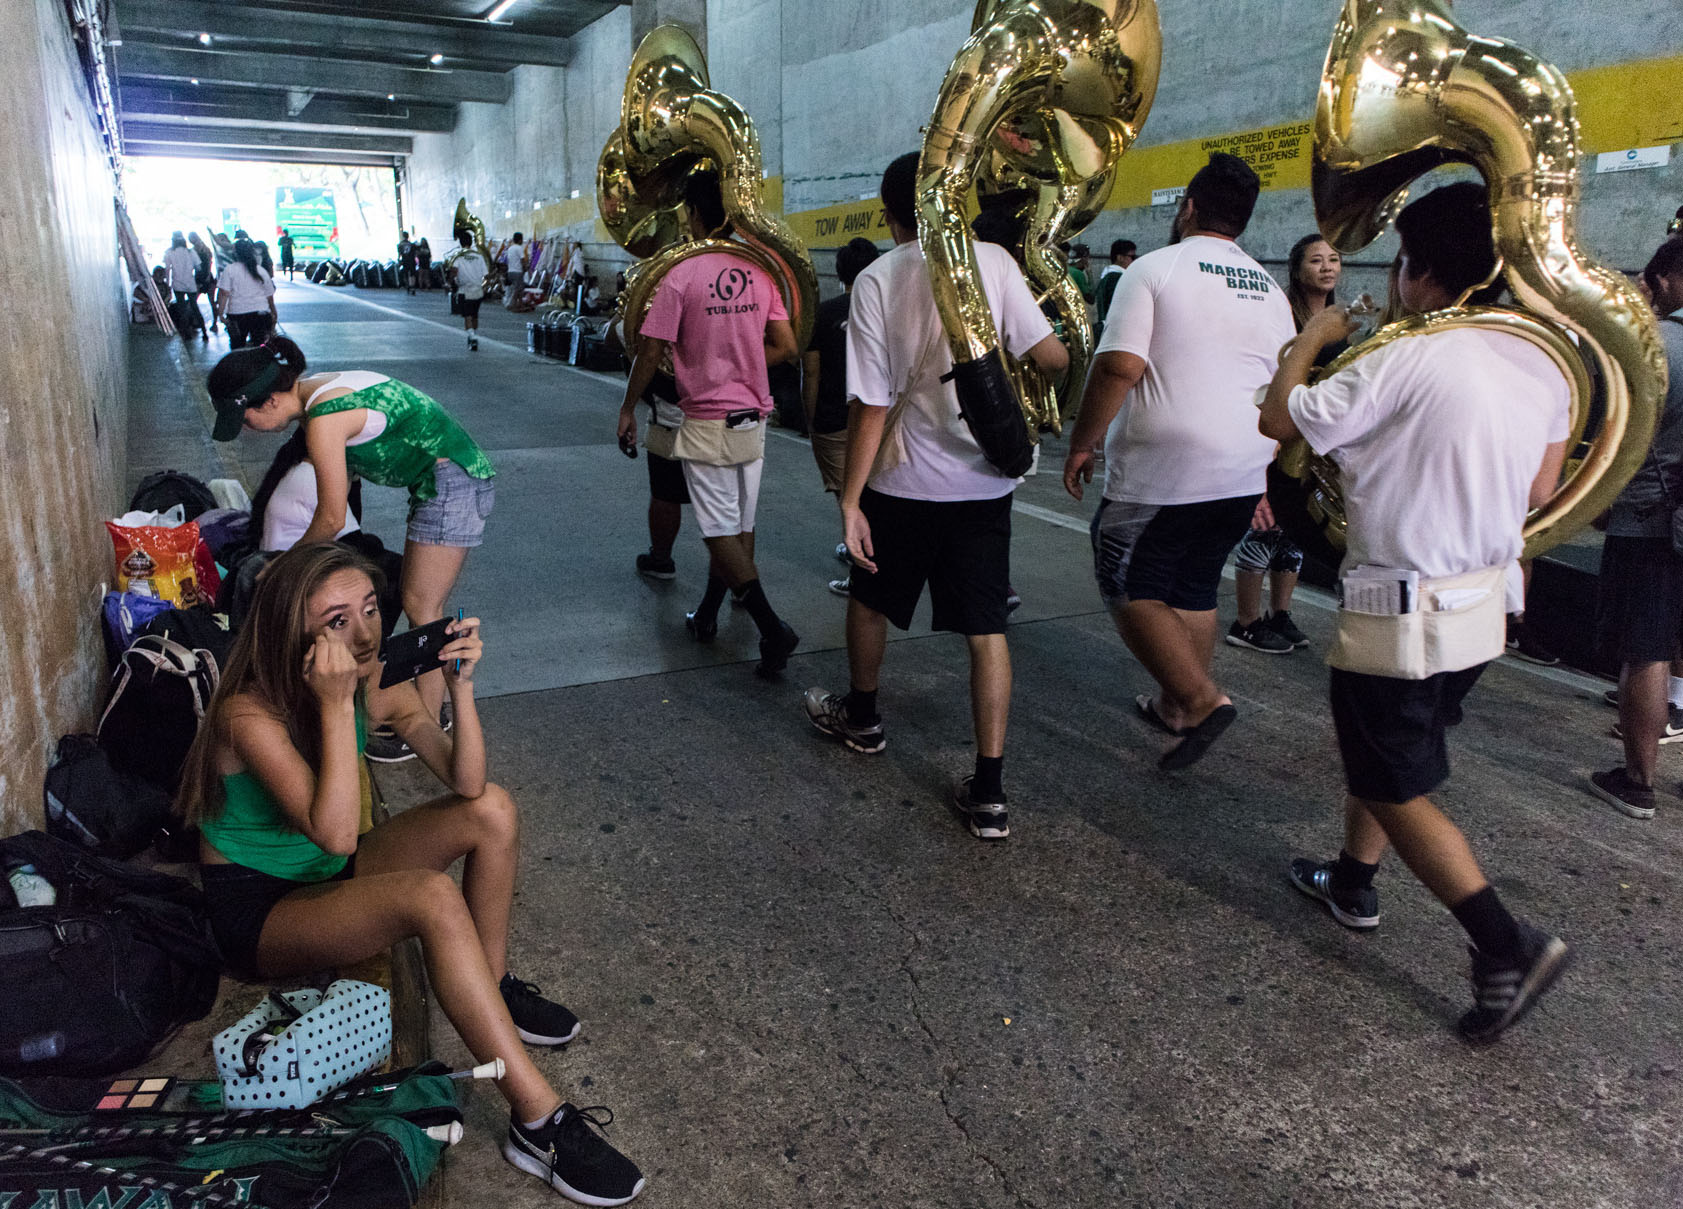 "<p>But hours before the game comes practice with the marching band. Dooms camps beside the stadium's north exit to prepare. ""My makeup, rhinestones and attire transform me into the twirler.""</p>"